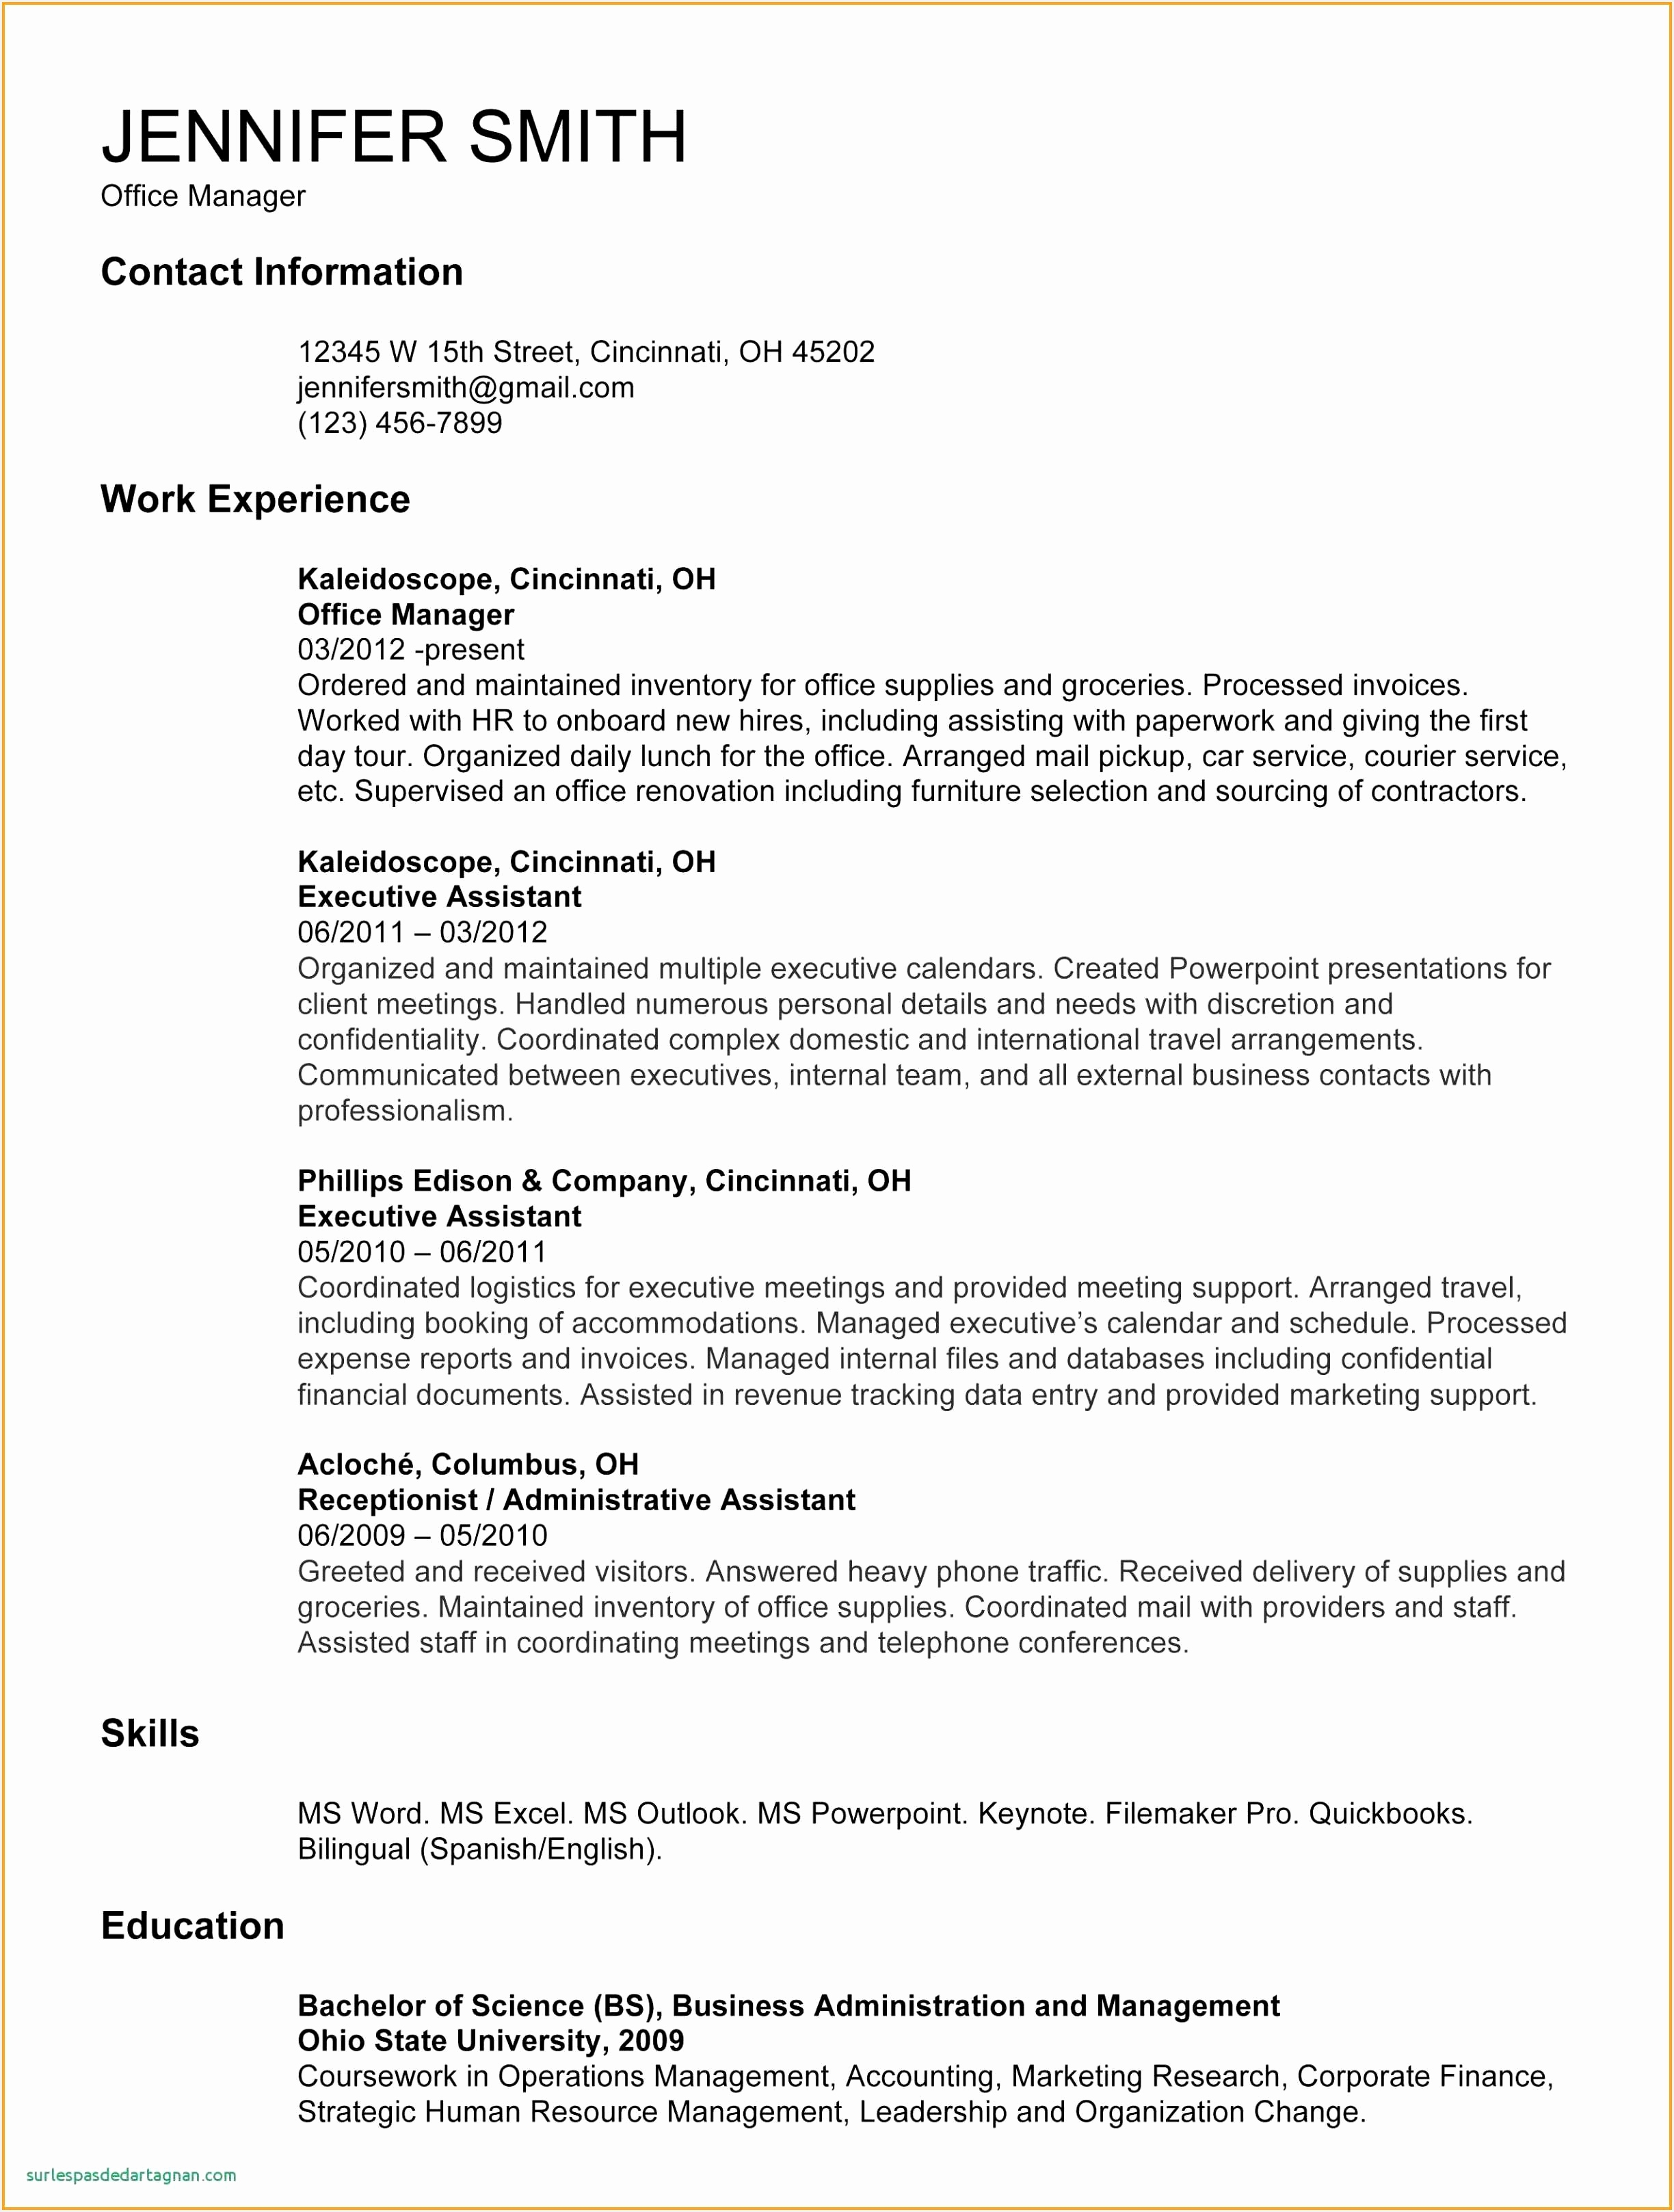 Resume Template Download Elegant Reception Resume Luxury American Resume Sample New Student Resume 0d32342448